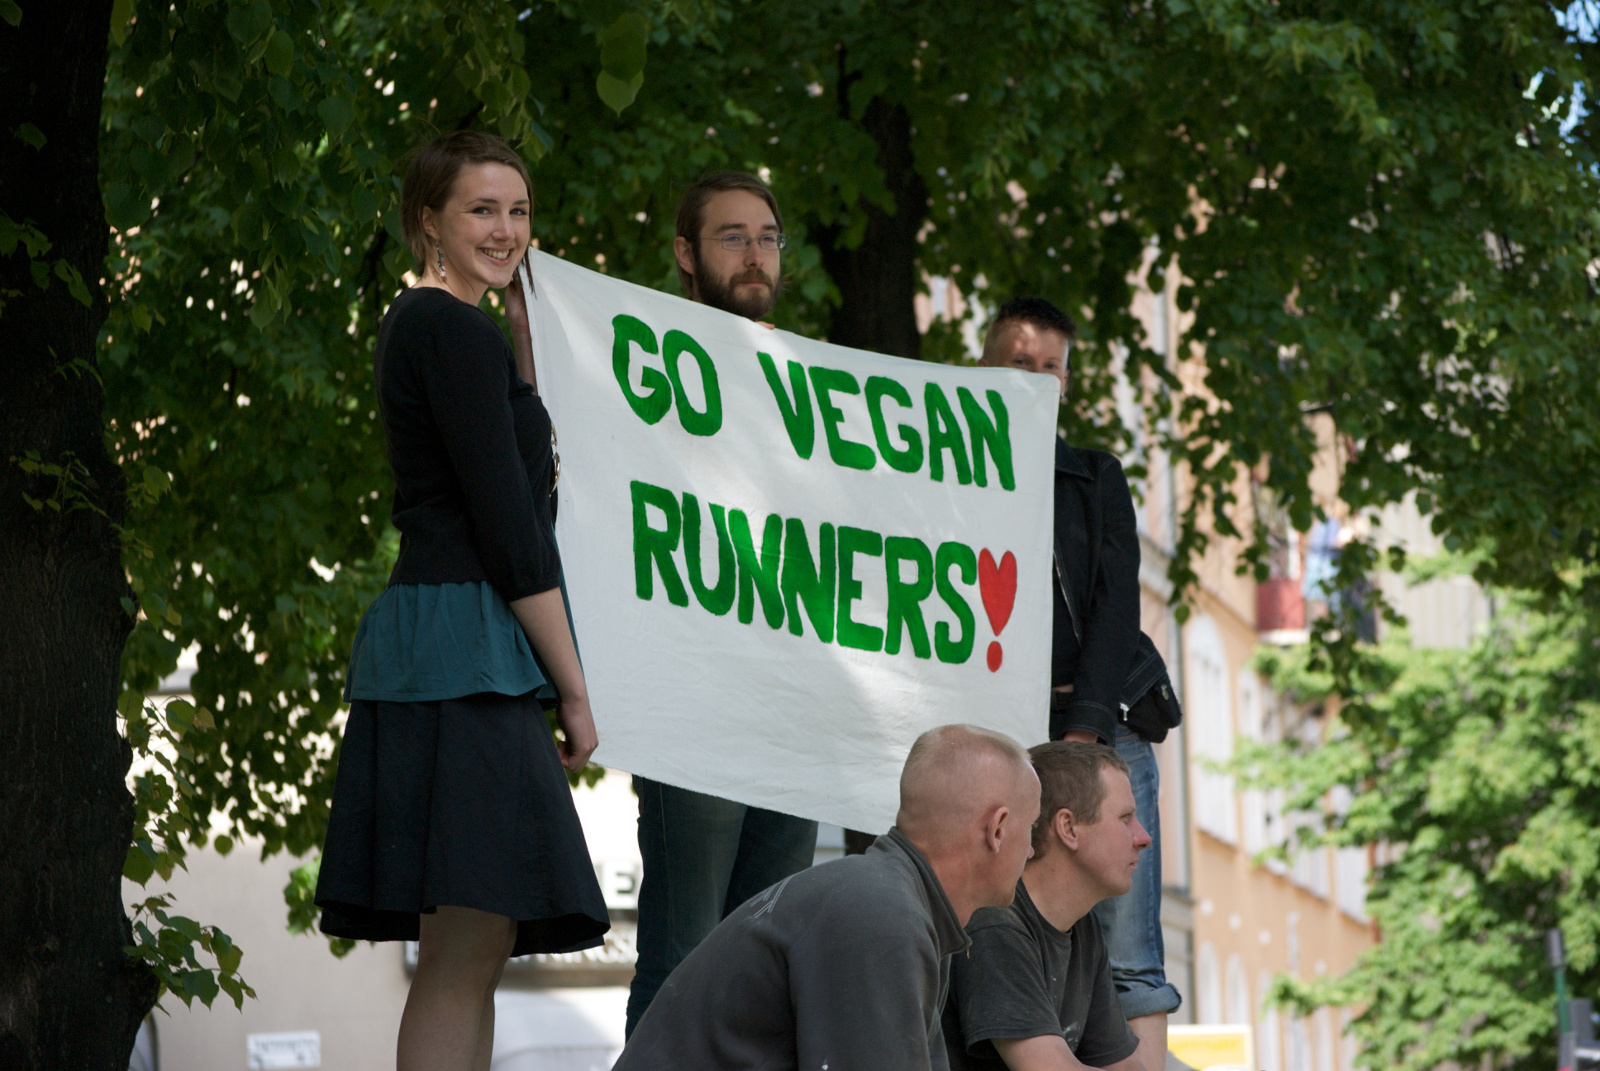 How to Be a Vegan Runner